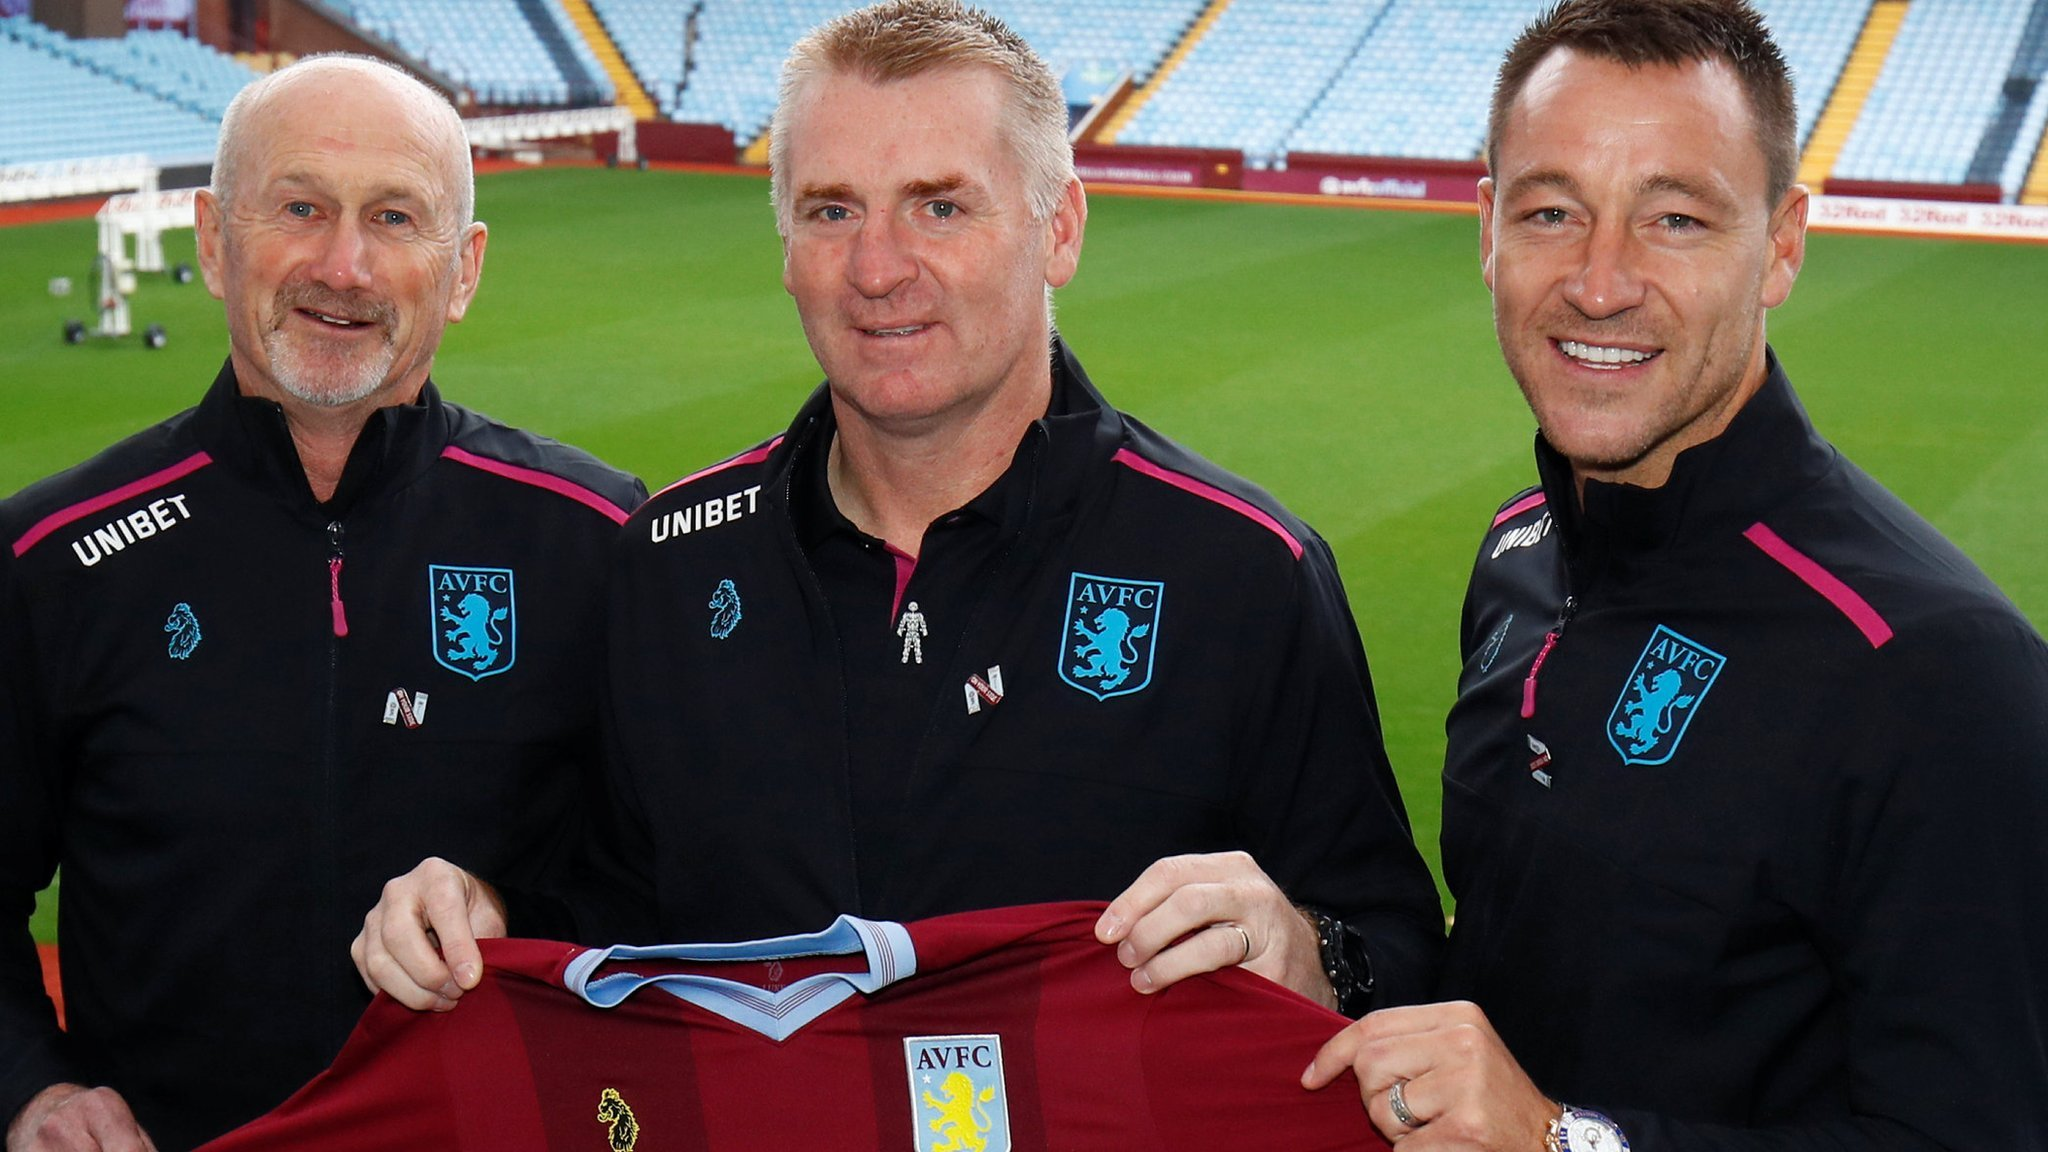 Aston Villa: John Terry and head coach Dean Smith are 'excellent fit', says chief executive